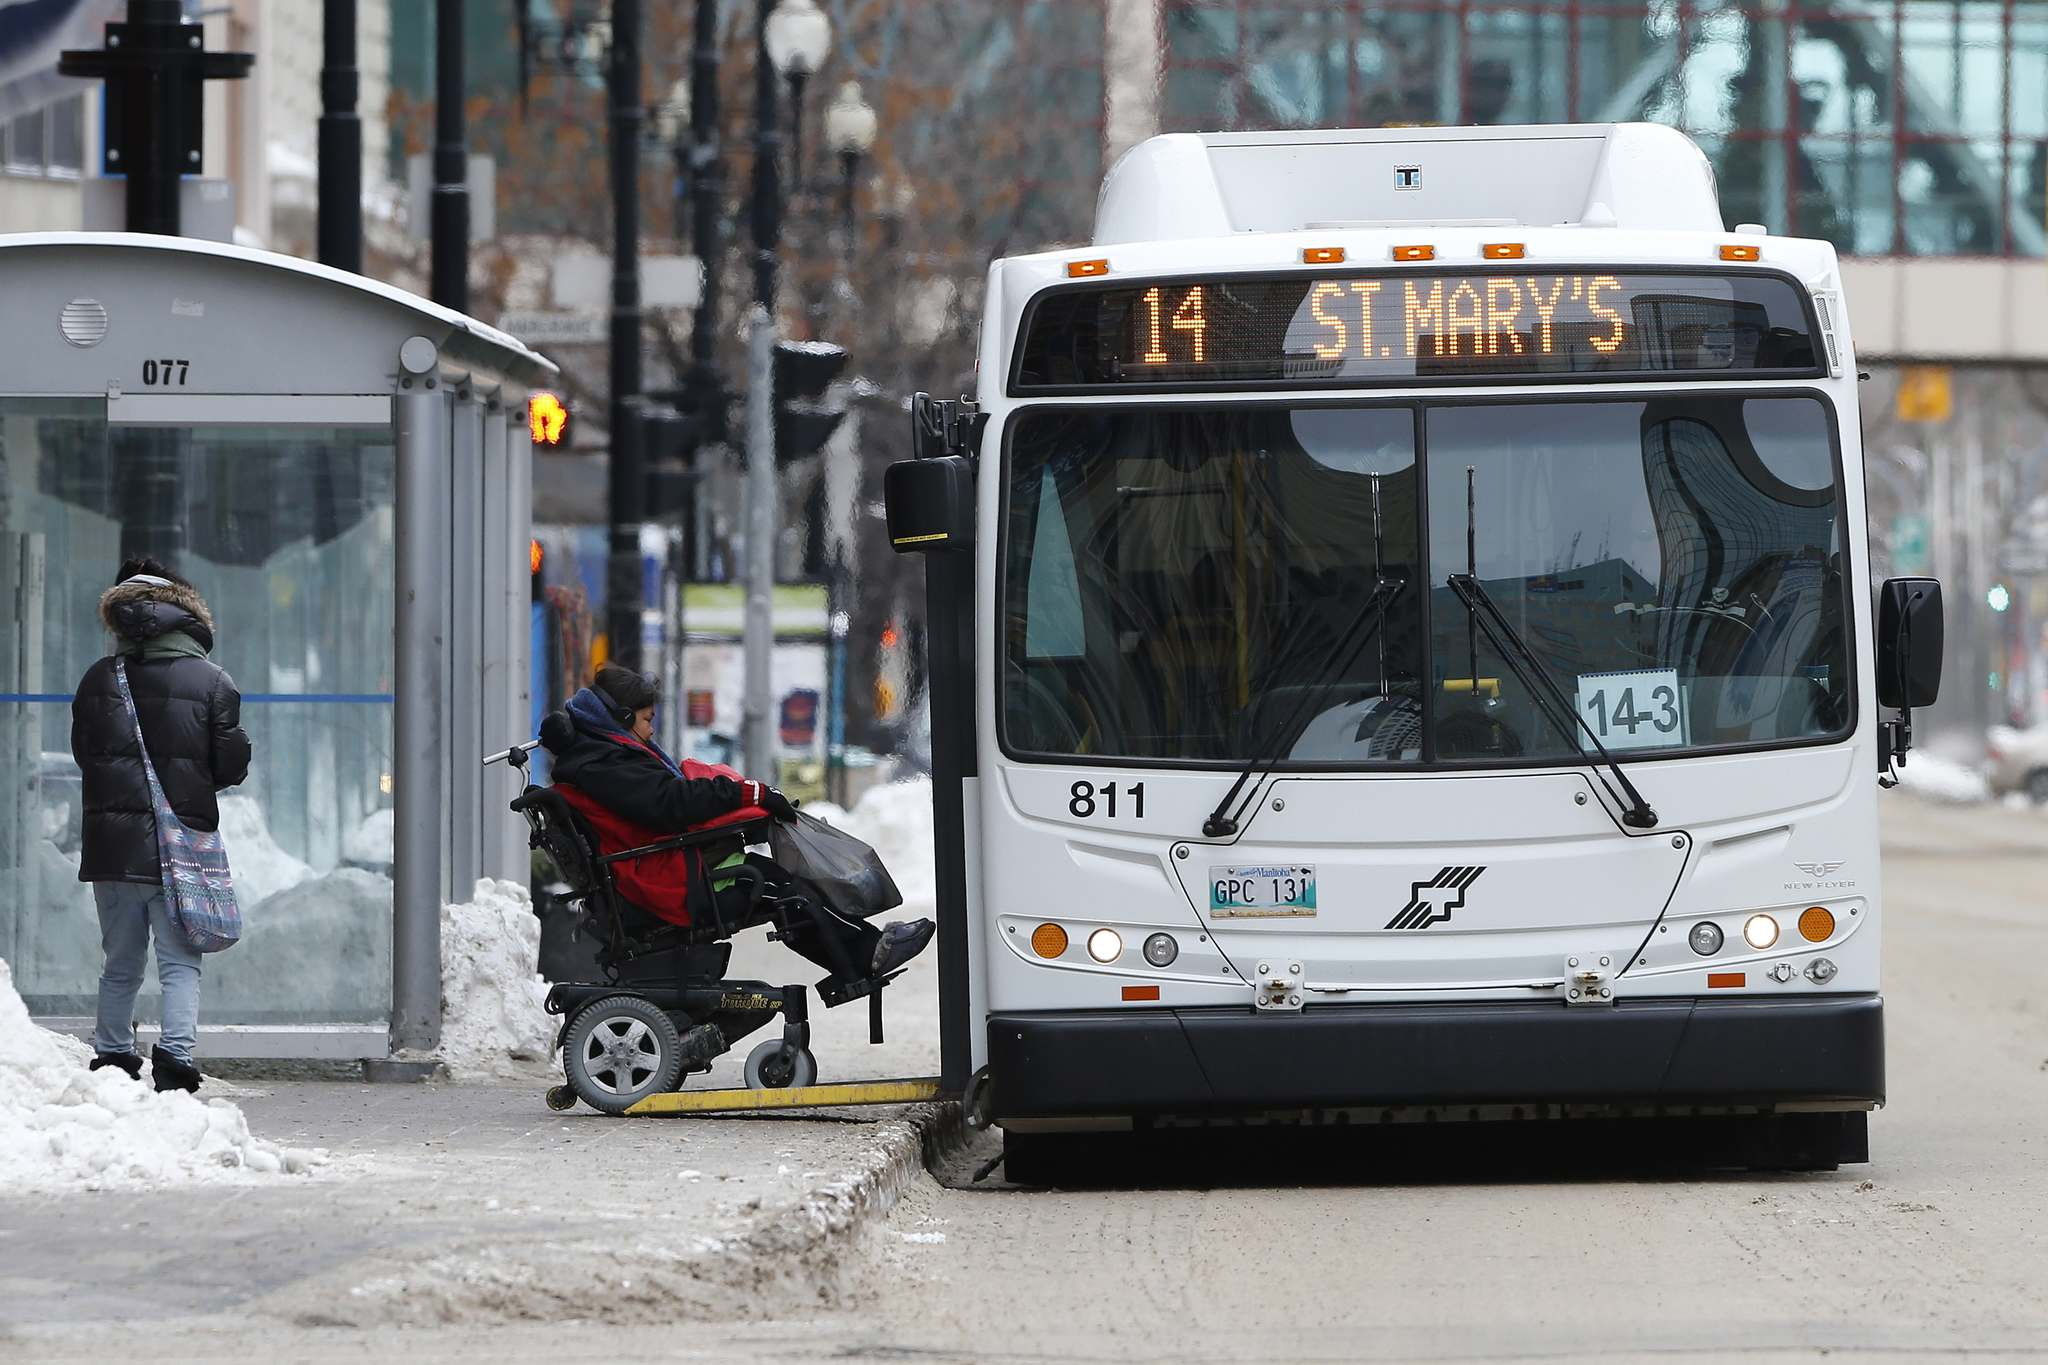 JOHN WOODS / WINNIPEG FREE PRESS FILES</p><p>A wheelchair-bound passenger gets on a city bus on Portage Avenue.</p>